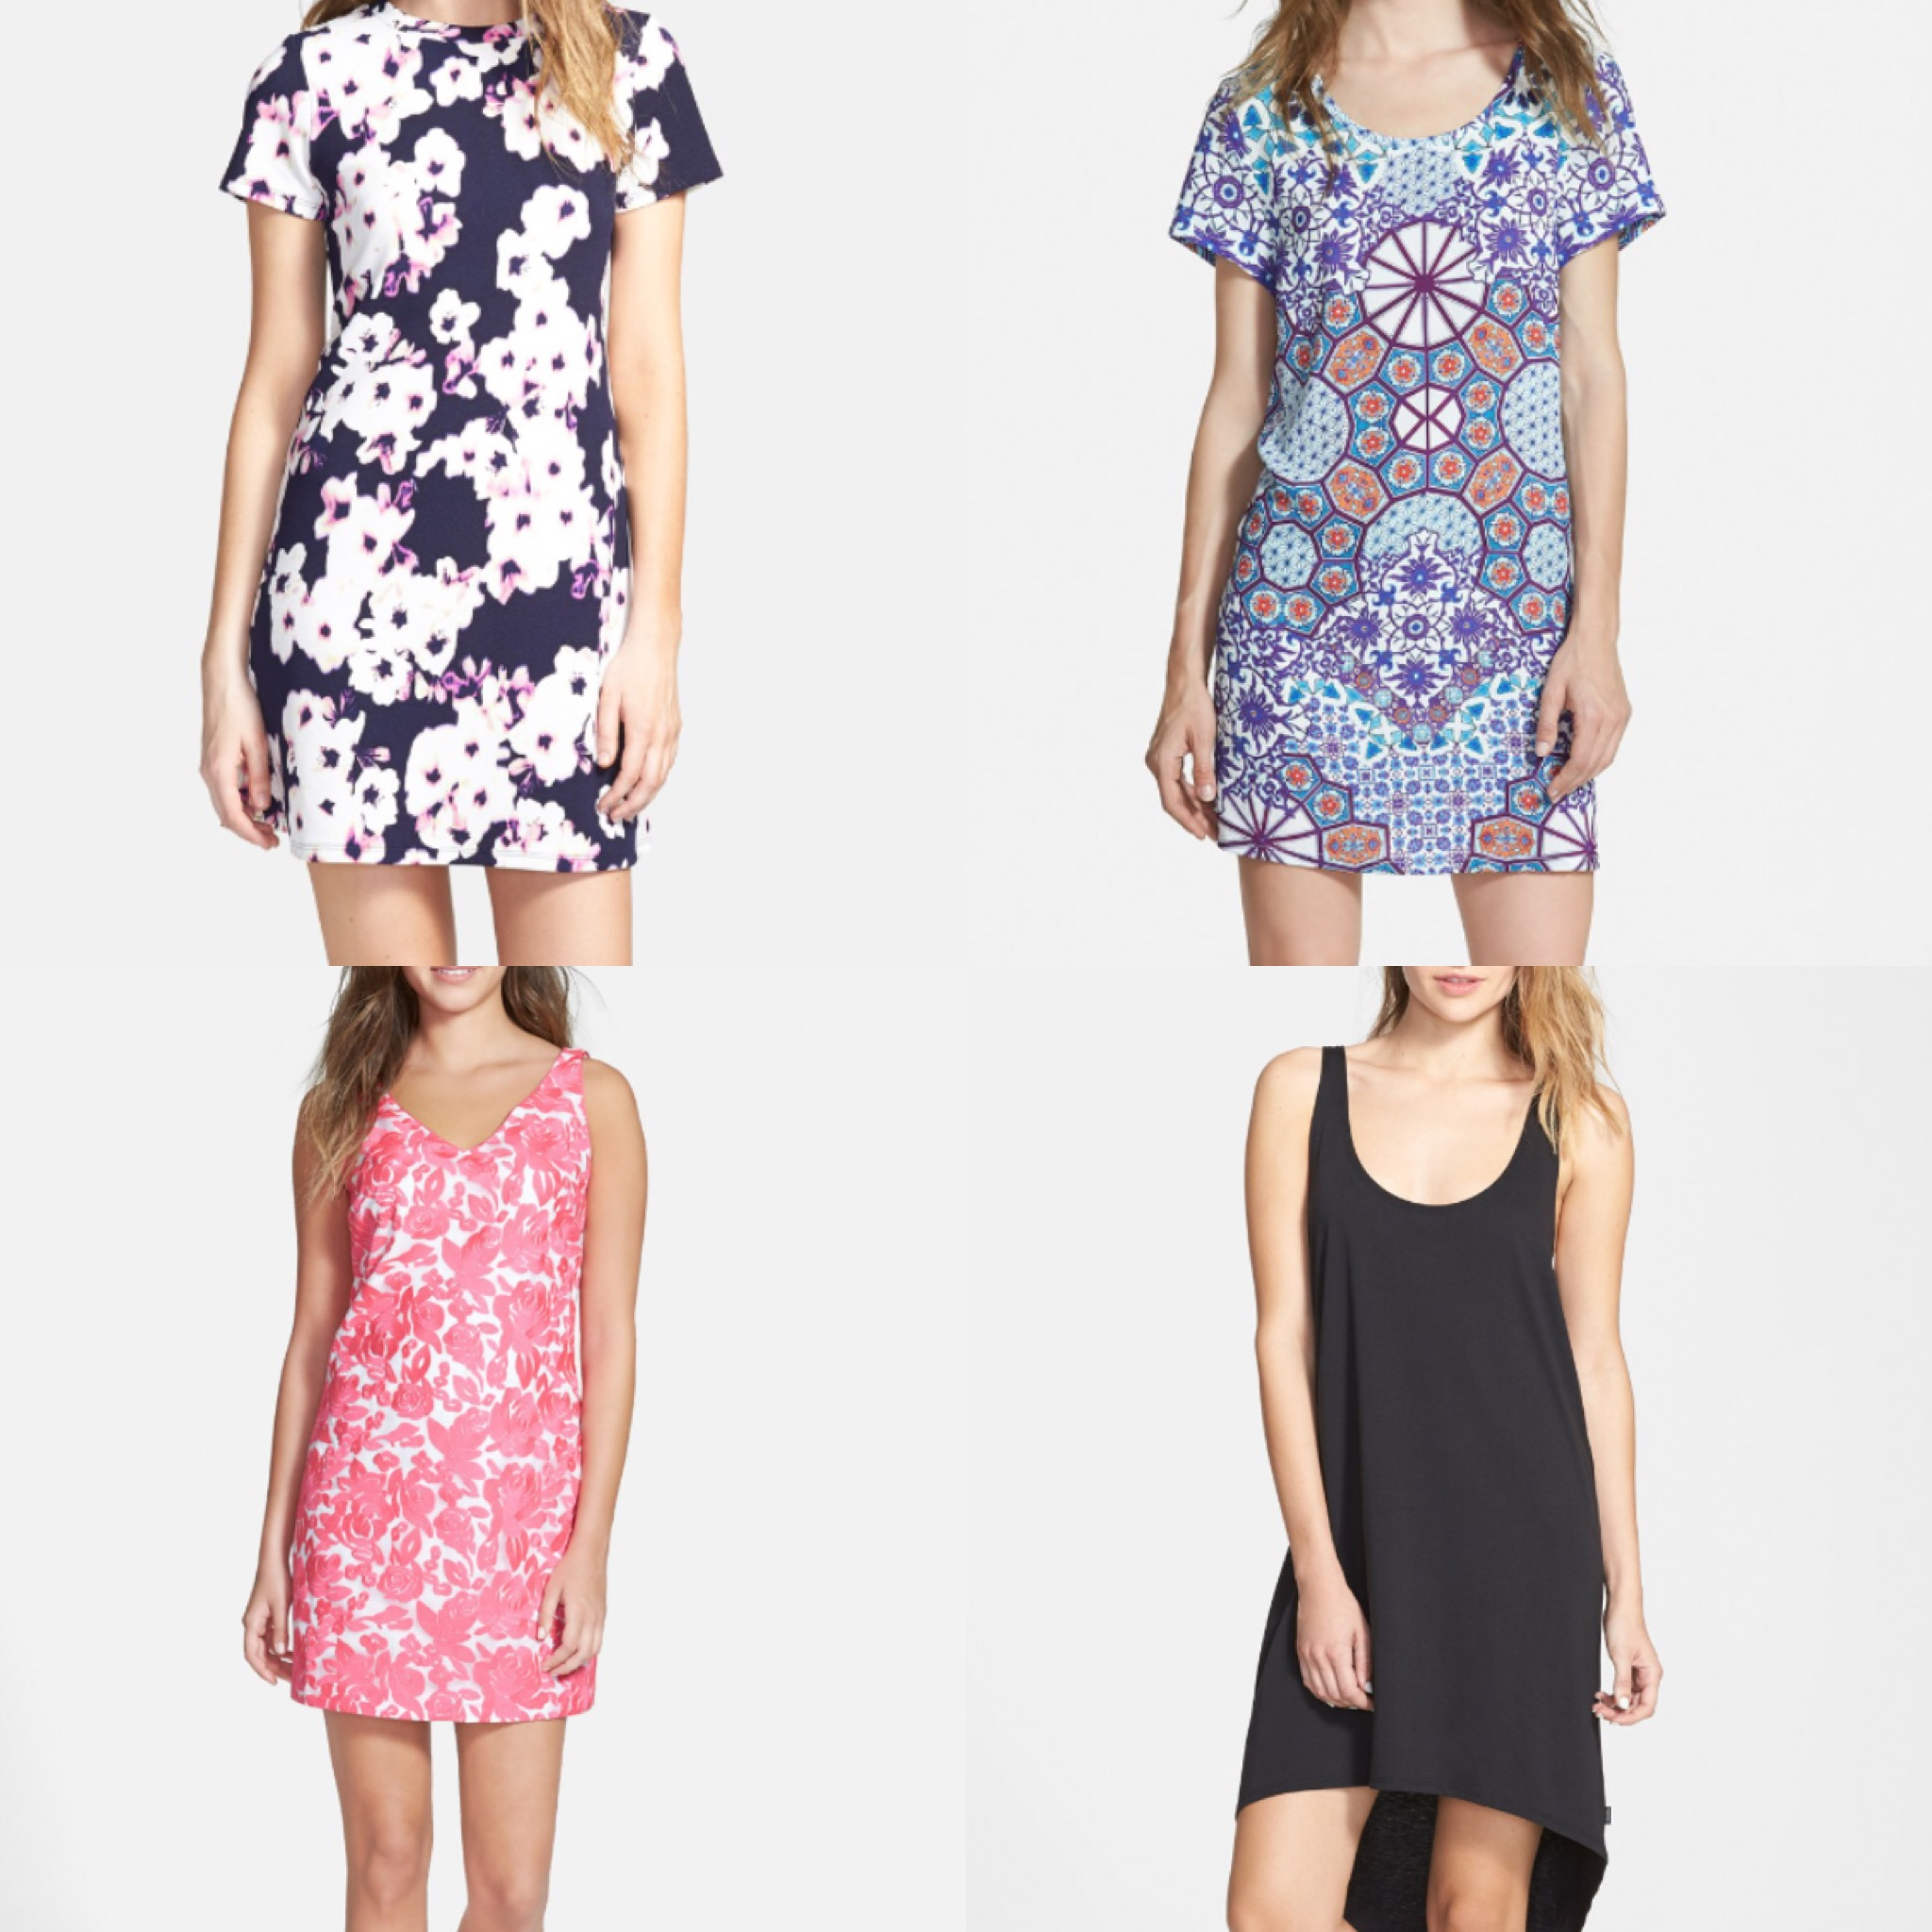 Clockwise from top left: One Clothing Floral Print Shift Dress MINKPINK Whisper of the Heart Dress  Volcom Into My Web Dress  Vineyard Vines Embroidered Silk Shirt Dress